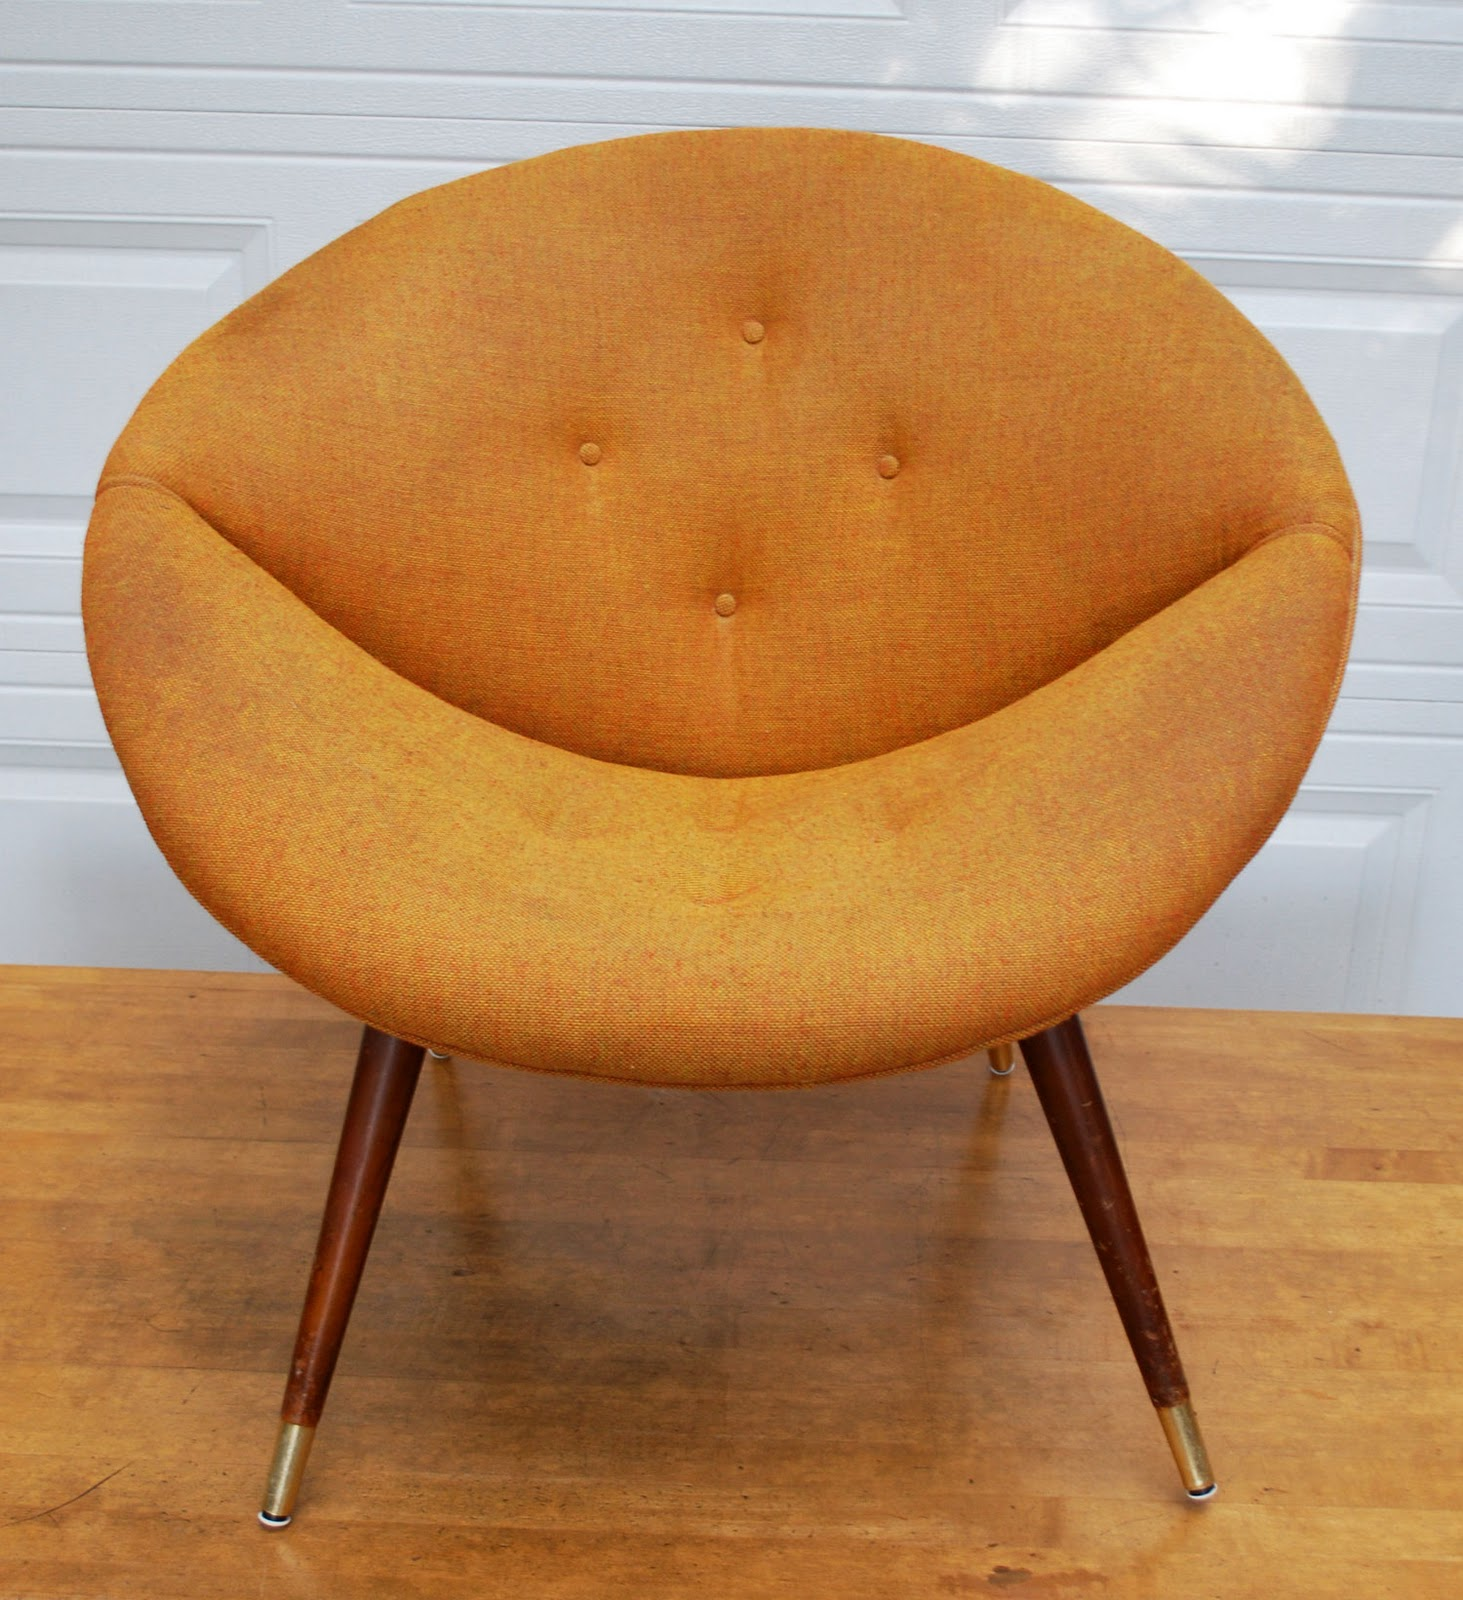 Junk2funk Vintage Orange Saucer Chair